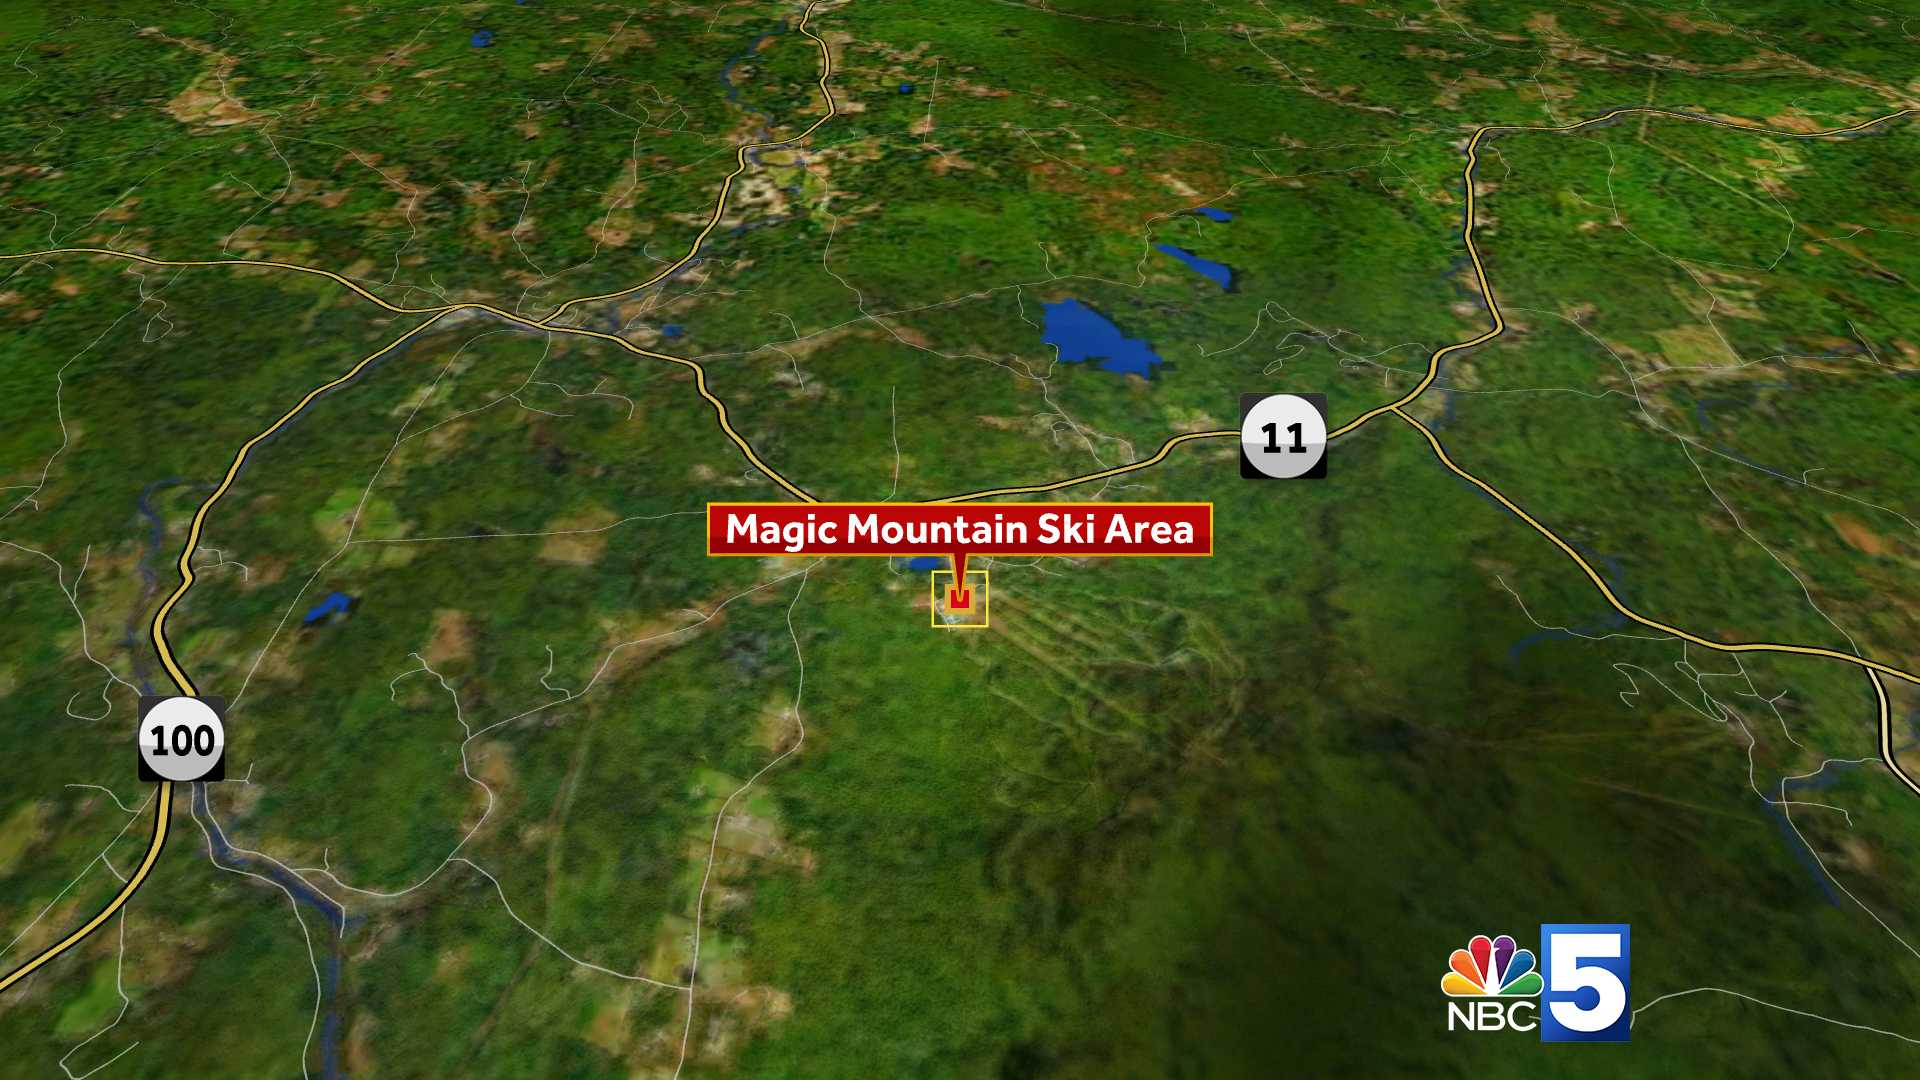 Magic Mountain Ski Area